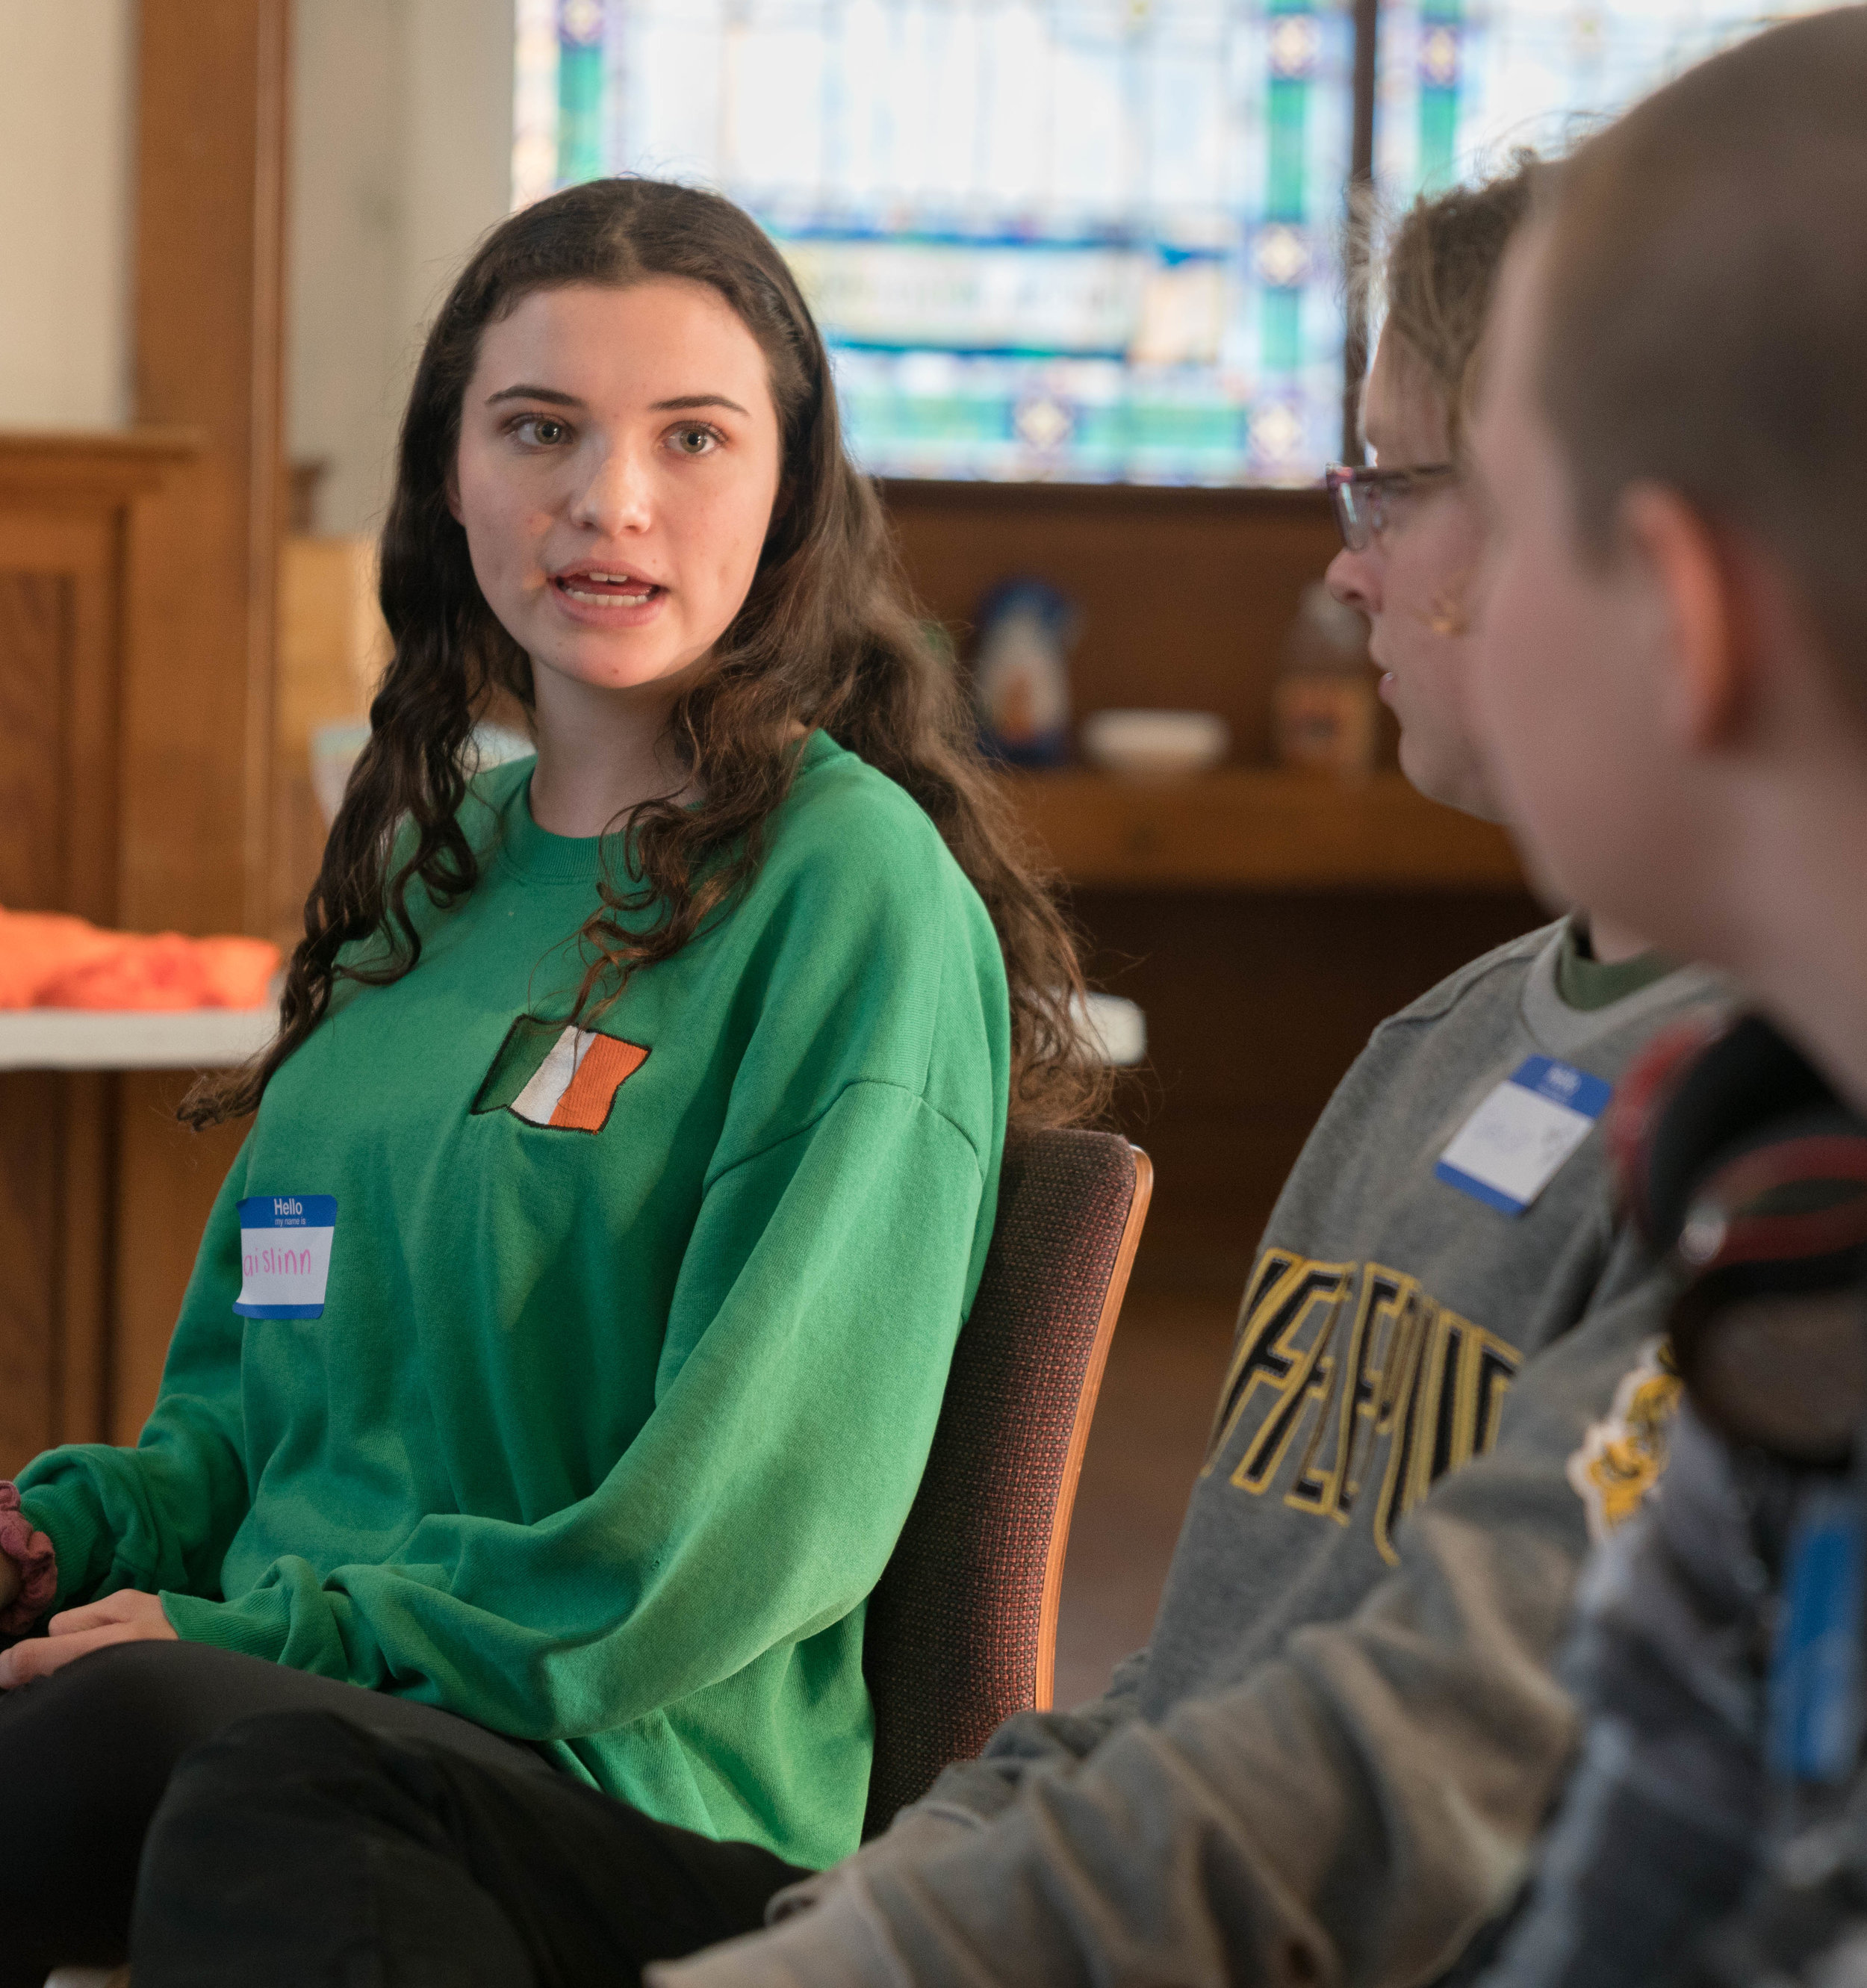 Aislinn Russell (left), a sophomore at Crossroads School for Arts & Sciences, speaks with Santa Monica High School students, Spencer Newman (center) and Roger Gawne (right), at a meeting in Santa Monica, California on Tuesday, April 17, 2018. (Helena Sung/Corsair Staff)